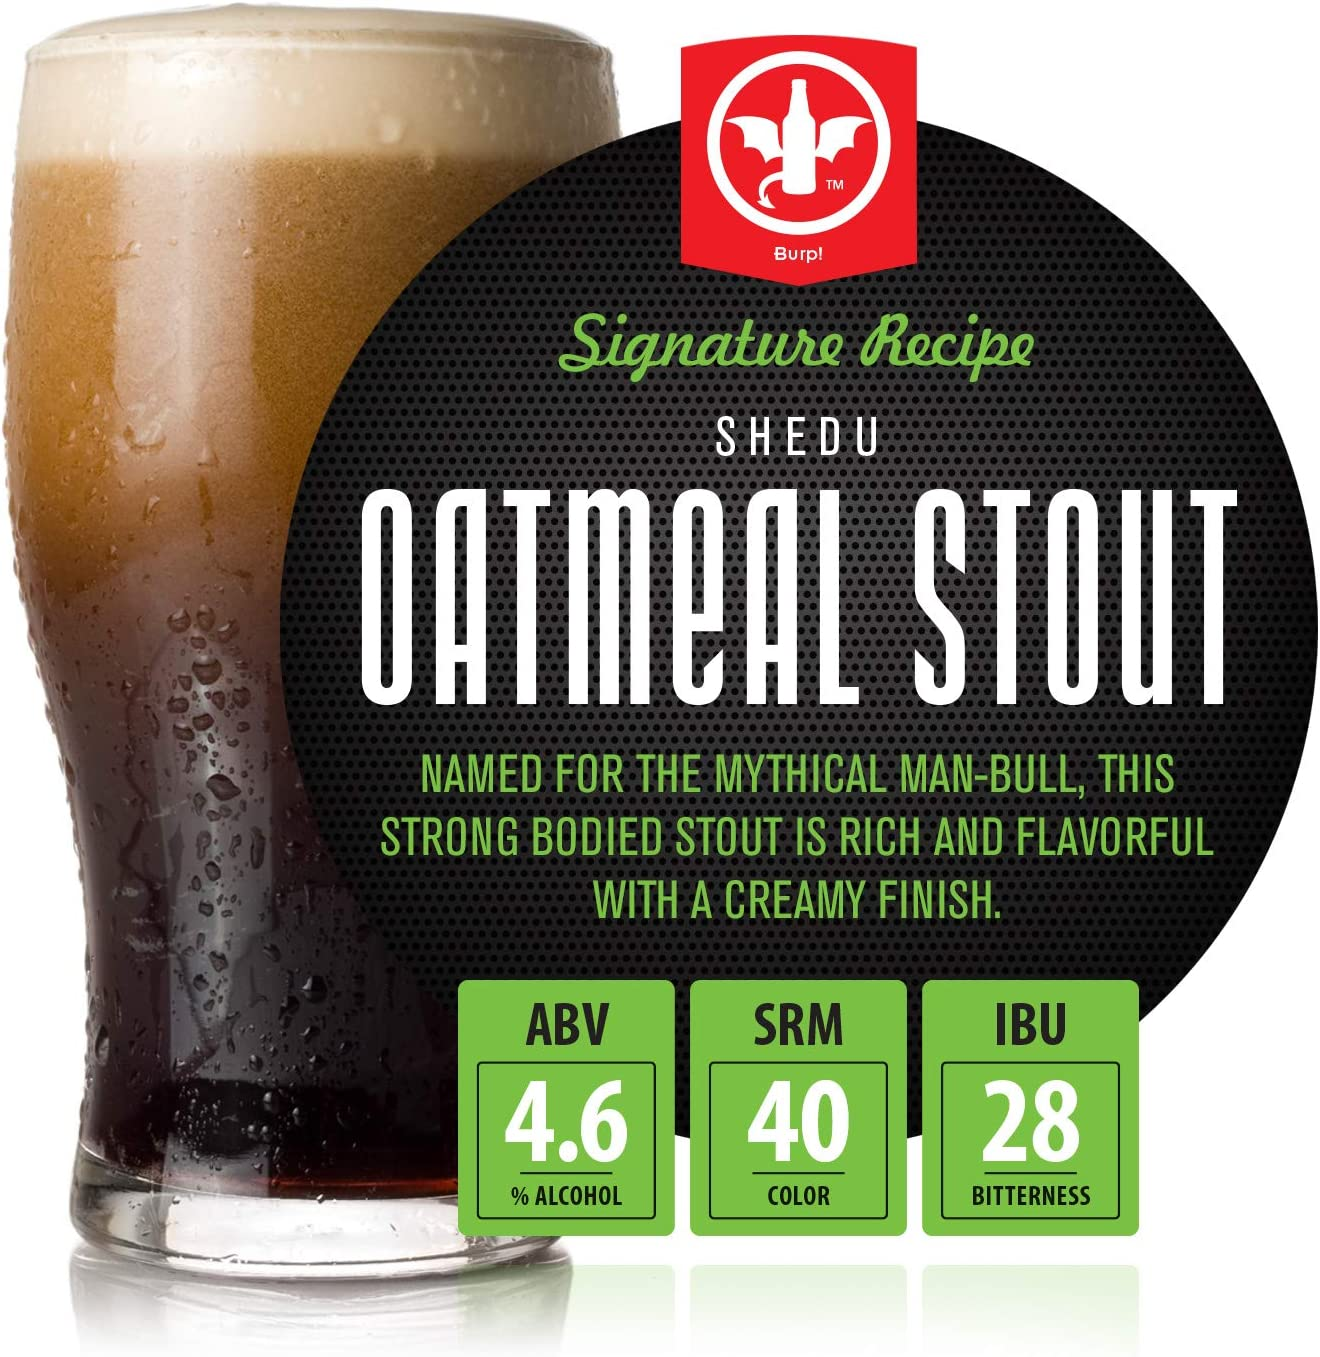 BrewDemon 2 Gal. Shedu Oatmeal Stout Beer Recipe Kit - Makes a Wicked-Good 4.6% ABV Batch of Craft Brewed Signature Beer